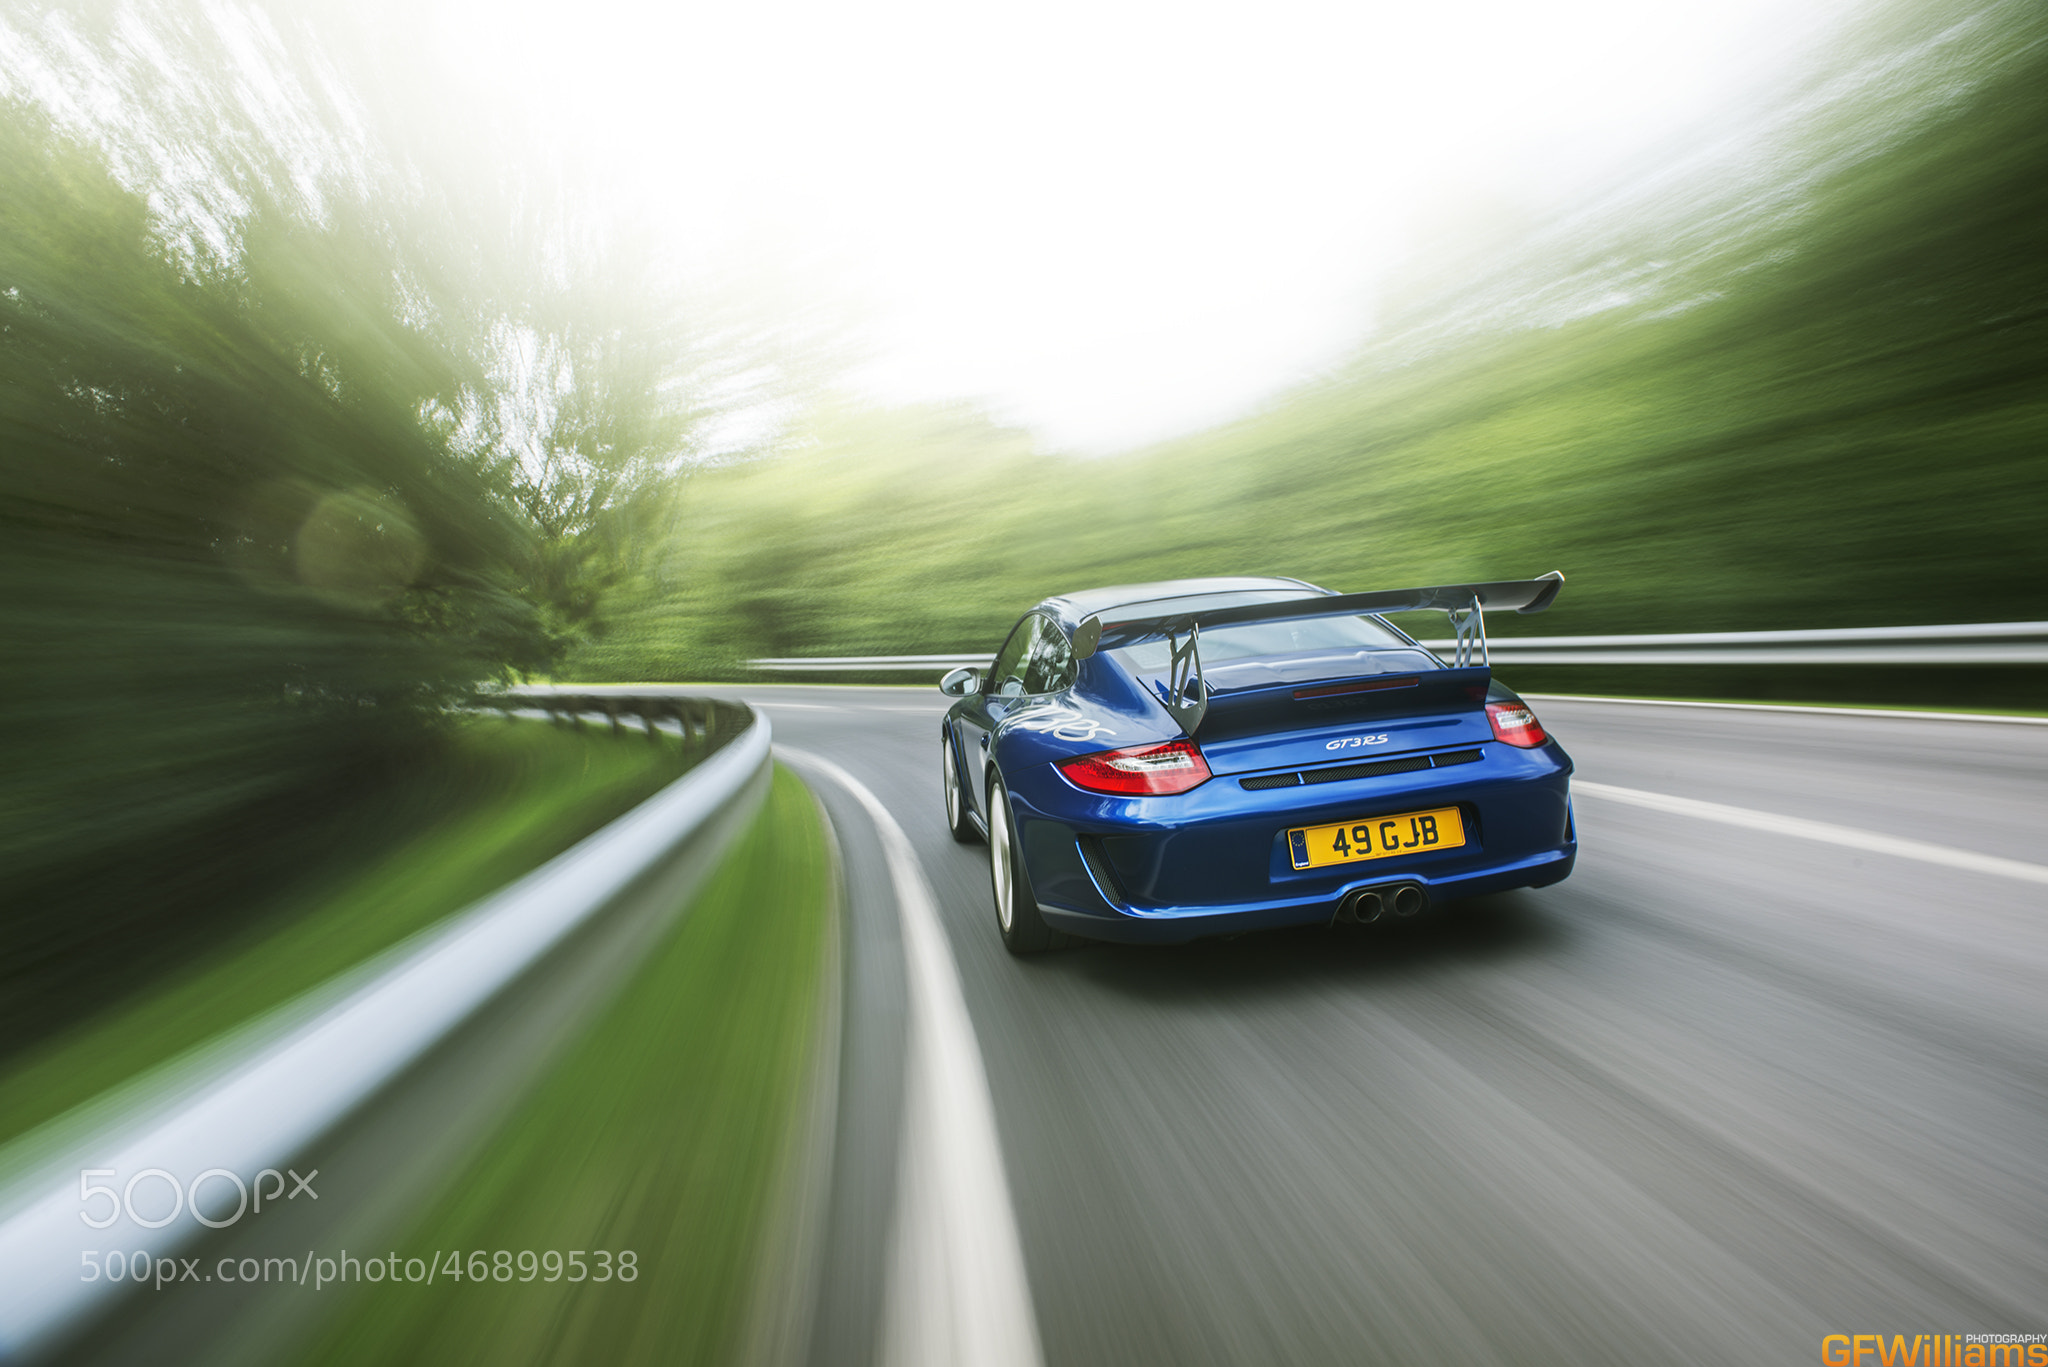 Photograph Porsche GT3RS Speeding! by George Williams on 500px